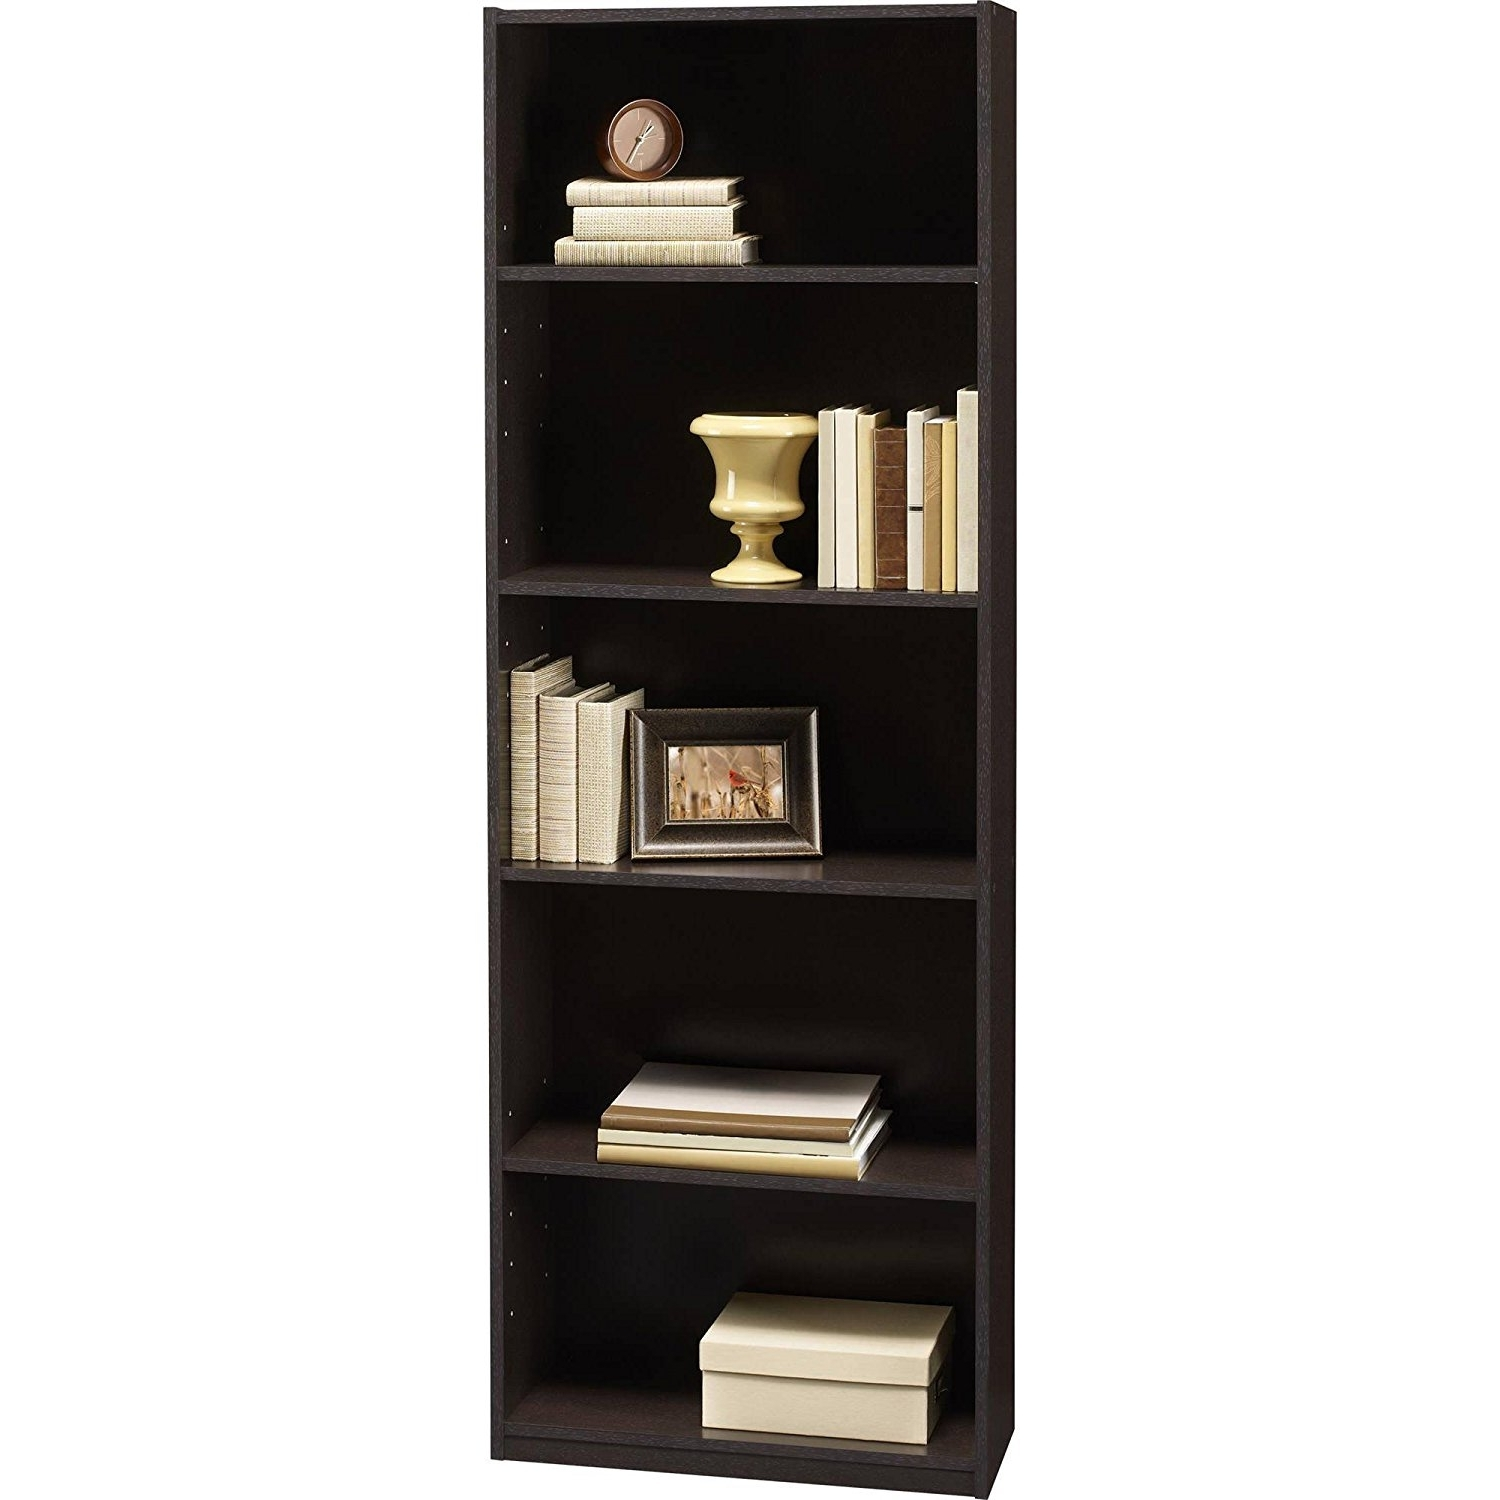 6 Shelf Bookcases Throughout Preferred Amazon: Ameriwood 5 Shelf Bookcases, Set Of 2, Espresso (View 14 of 15)